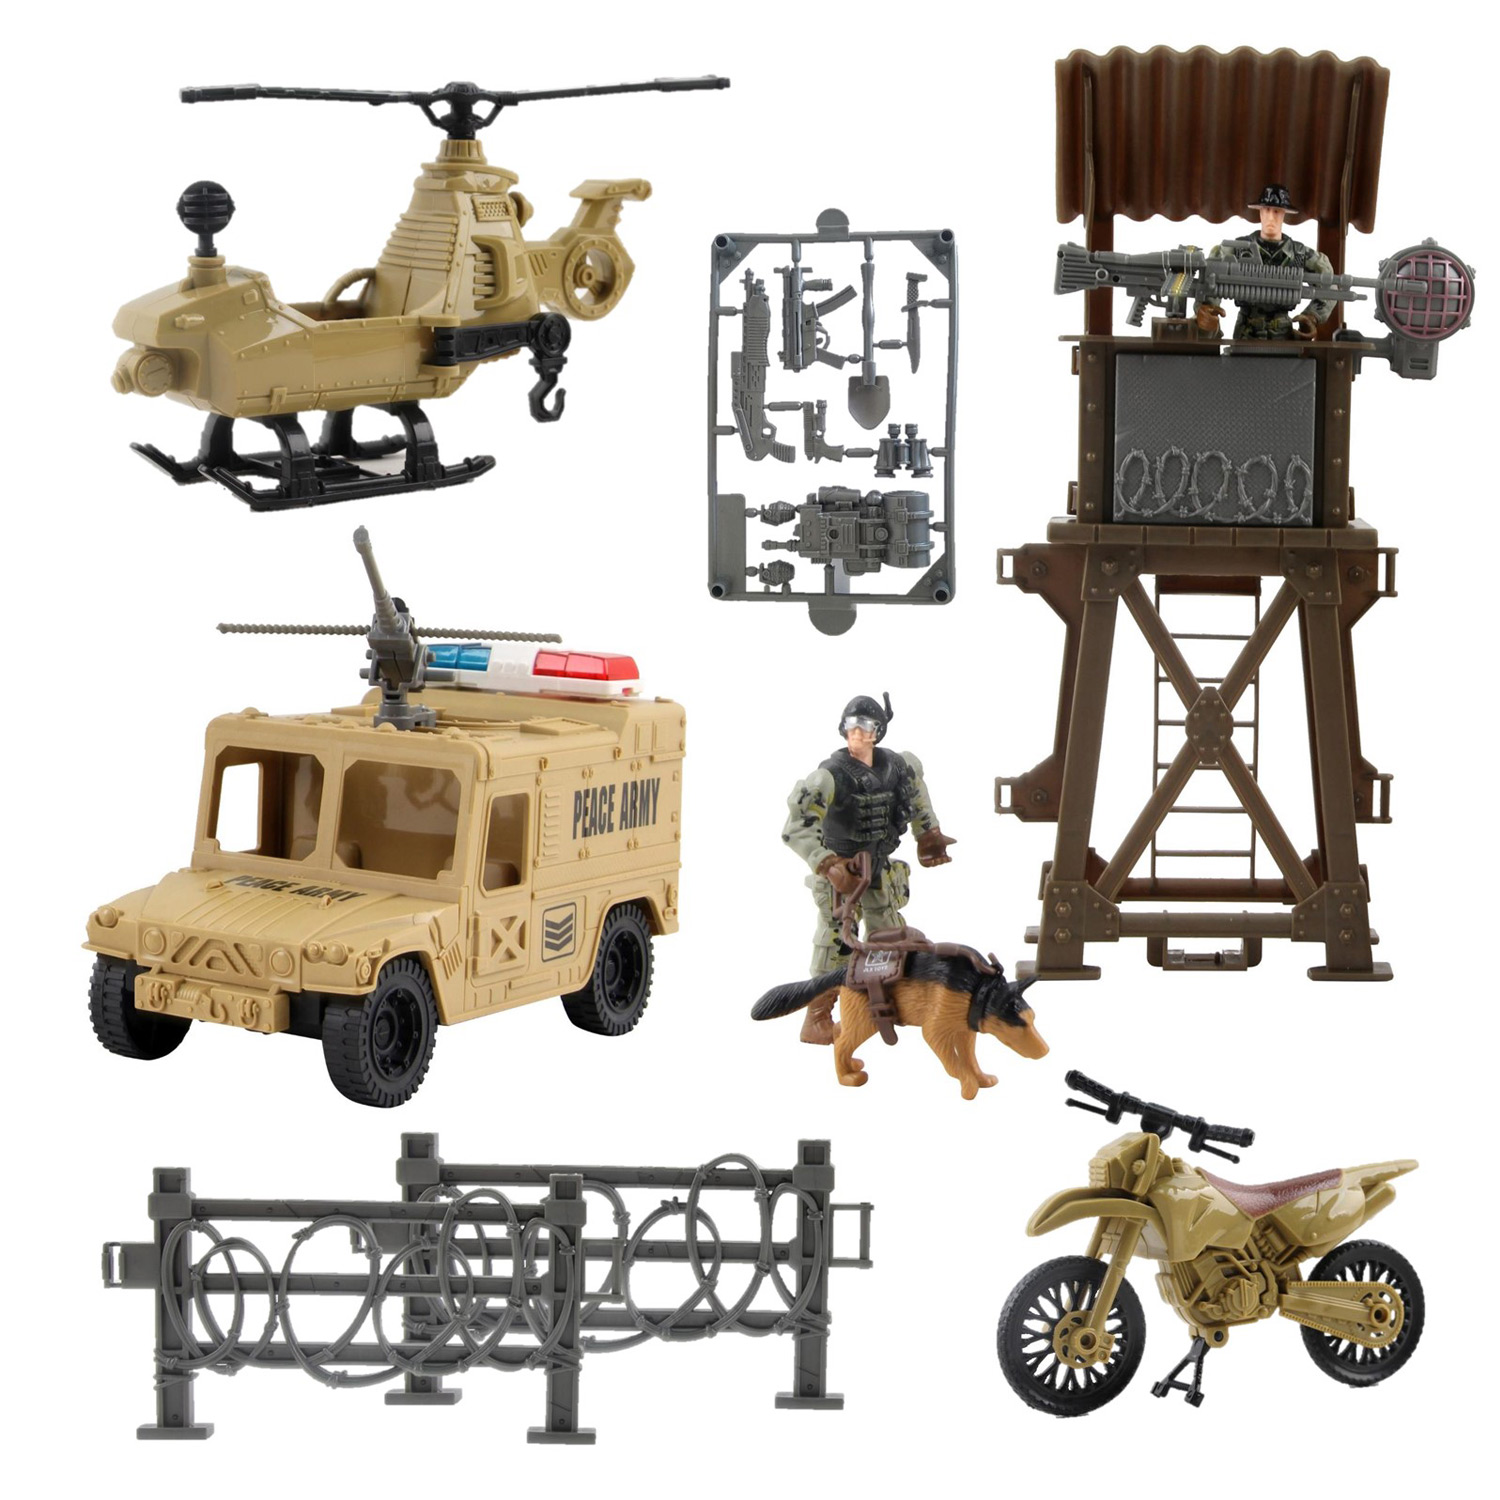 Deluxe Military Special Operations Combat Series Battle Play Set Includes Lookout Watch Tower Helicopter Motorcycle Armored Vehicle Army Dog Two Soldiers And Artillery Perfect Kids Action Toys